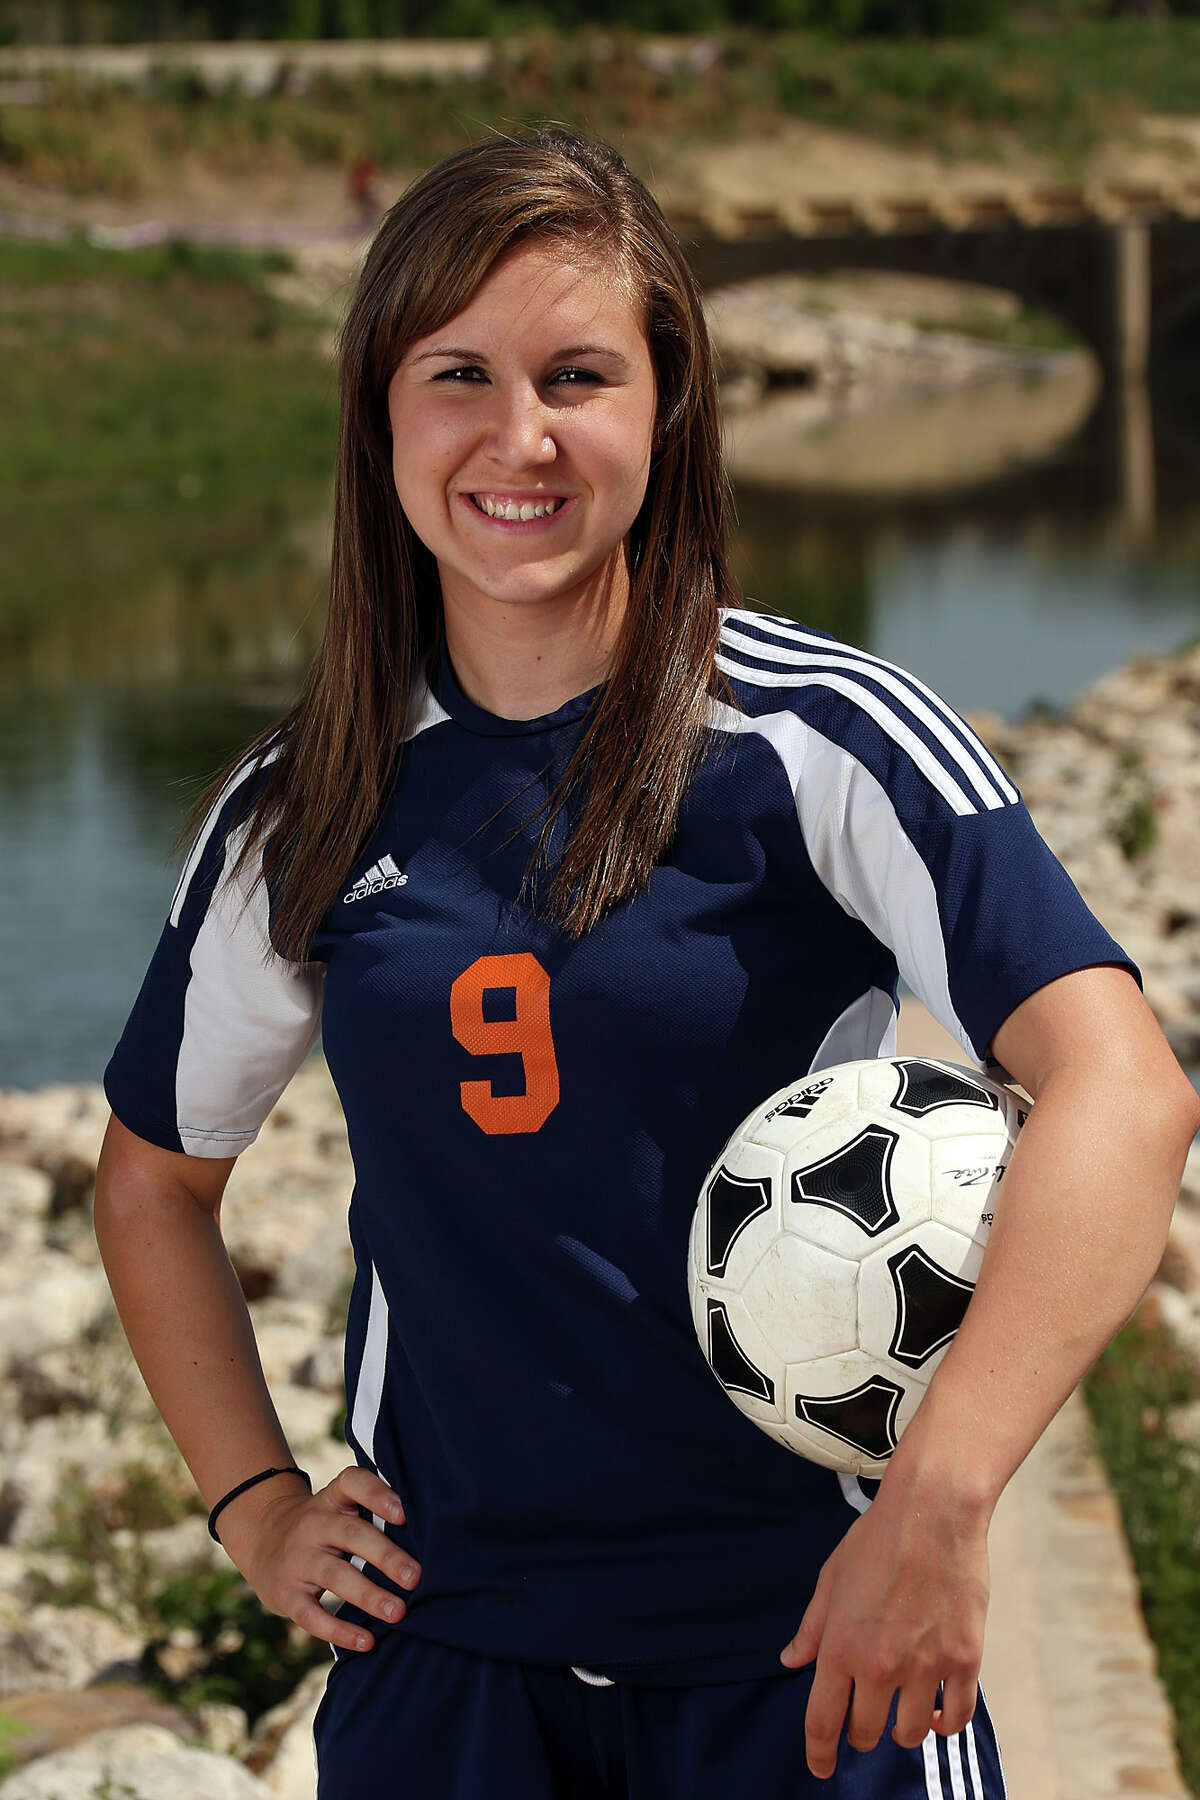 Abigail Koenigs, Brandeis High School soccer player photographed along the Mission Reach of the San Antonio River at Padre Park, Sunday, April 14, 2013.